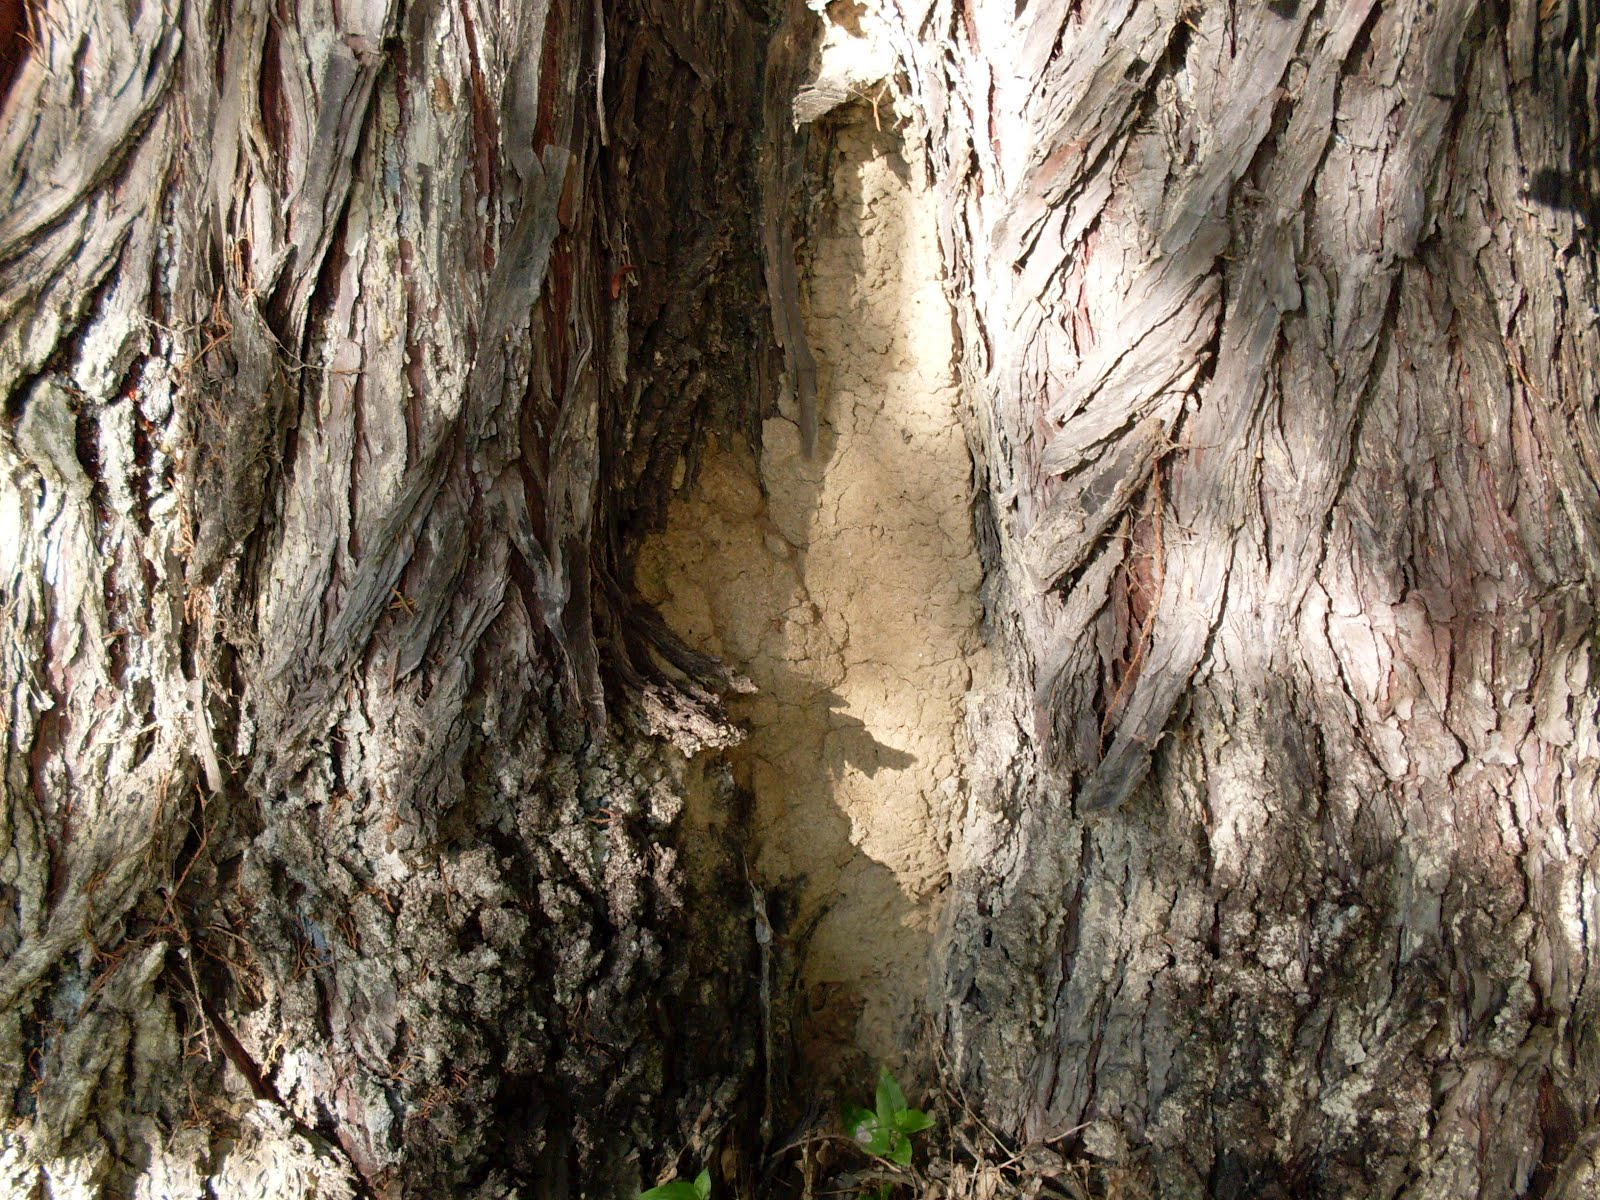 Termites In Tree Stump http://termitecontrolinsydney.blogspot.com/2012/04/termites-nesting-in-trees-stumps-and-in.html